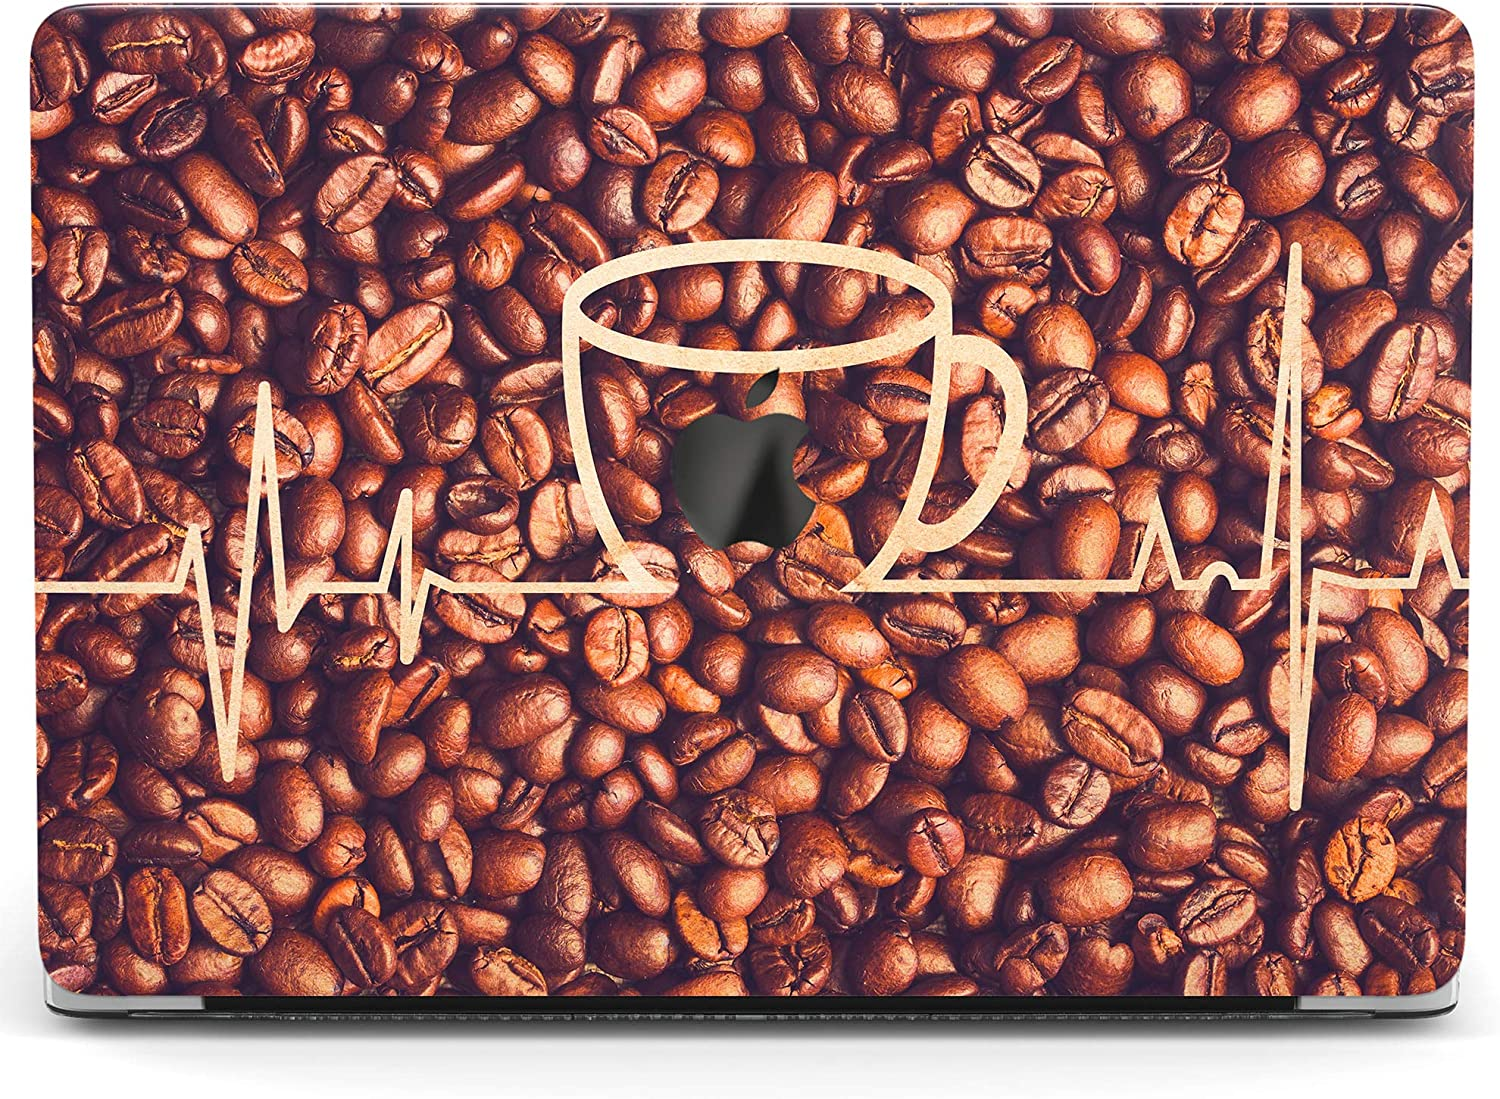 Wonder Wild Case Compatible with MacBook Air 13 inch Pro 15 2019 2018 Retina 12 11 Apple Hard Mac Protective Cover 2017 16 2020 Plastic Laptop Print Coffee Grains Beans Heartbeat Wave Nurse Pattern